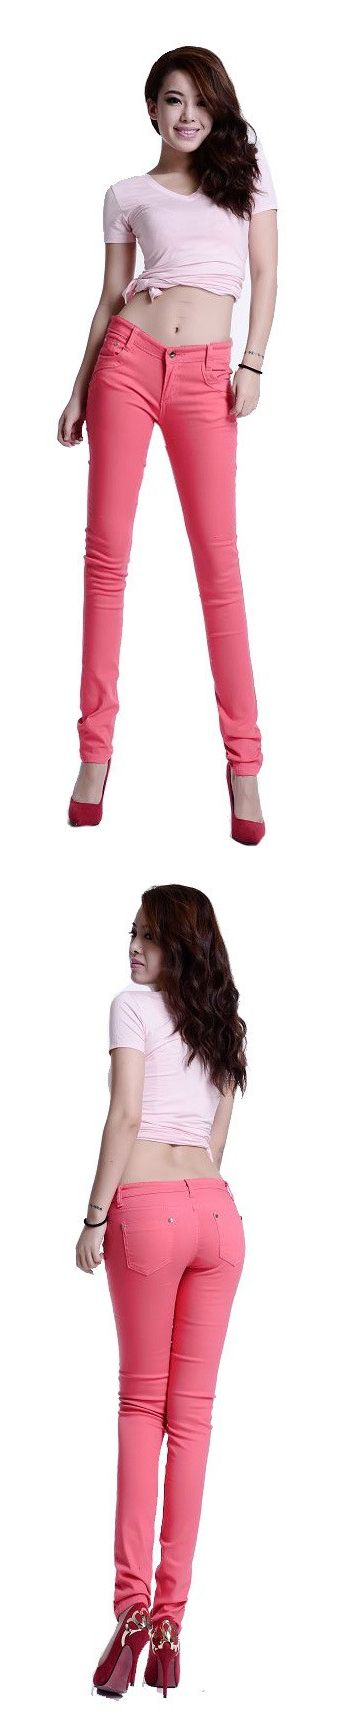 New Arrived Womens Jeggings Size 8 26 Ladies Fit Skinny Coloured Stretchy Trousers Jeans Casual Summer Autumn Pants Q0543-2